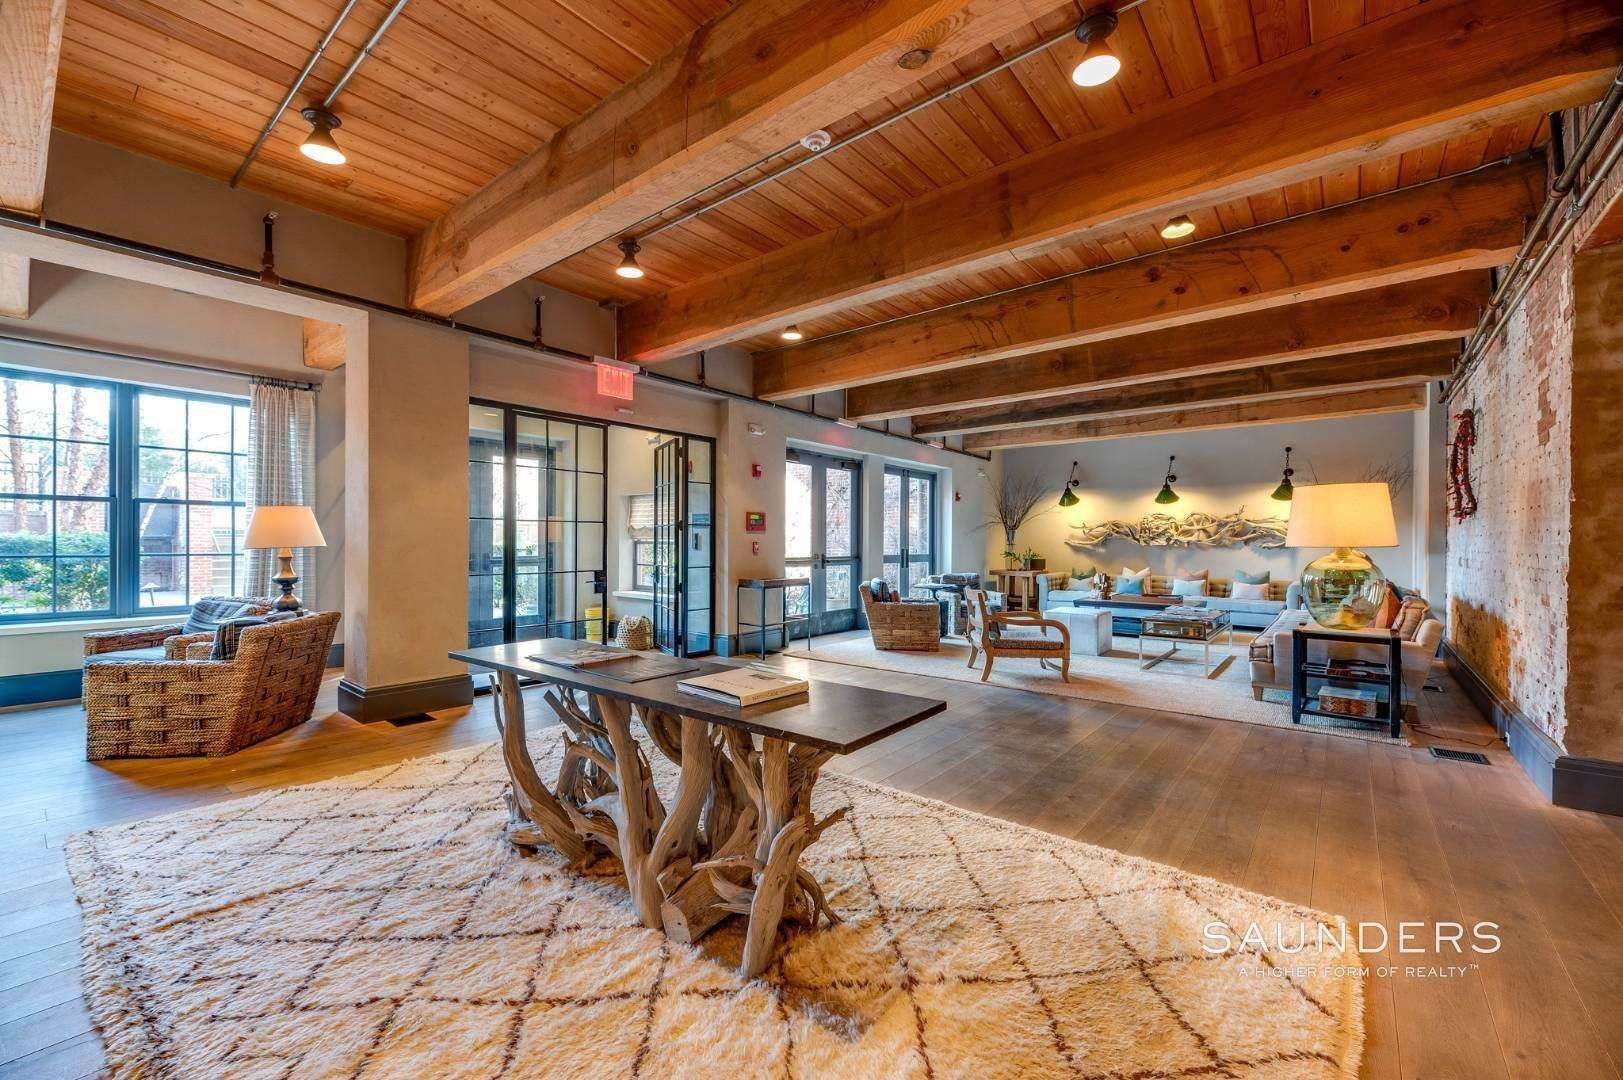 19. Condominiums for Sale at Watchcase Condo - Design By Steven Gambrel 15 Church Street, Unit C-220, Sag Harbor, Southampton Town, NY 11963